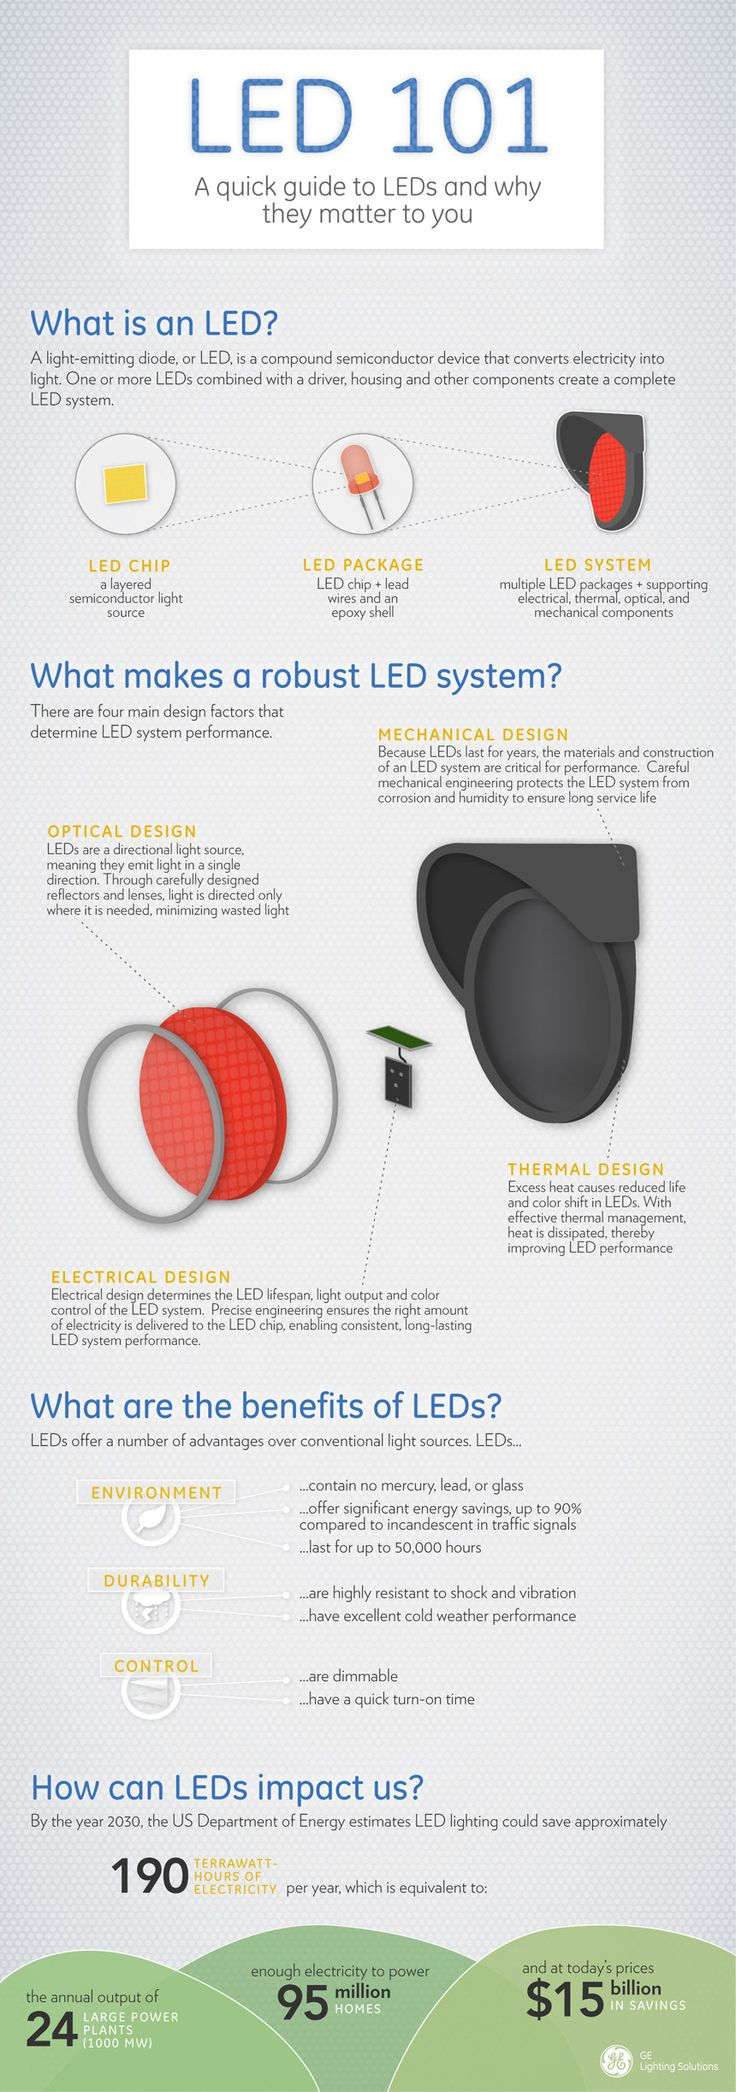 LED 101: A quick guide to LEDs and why they matter to you.